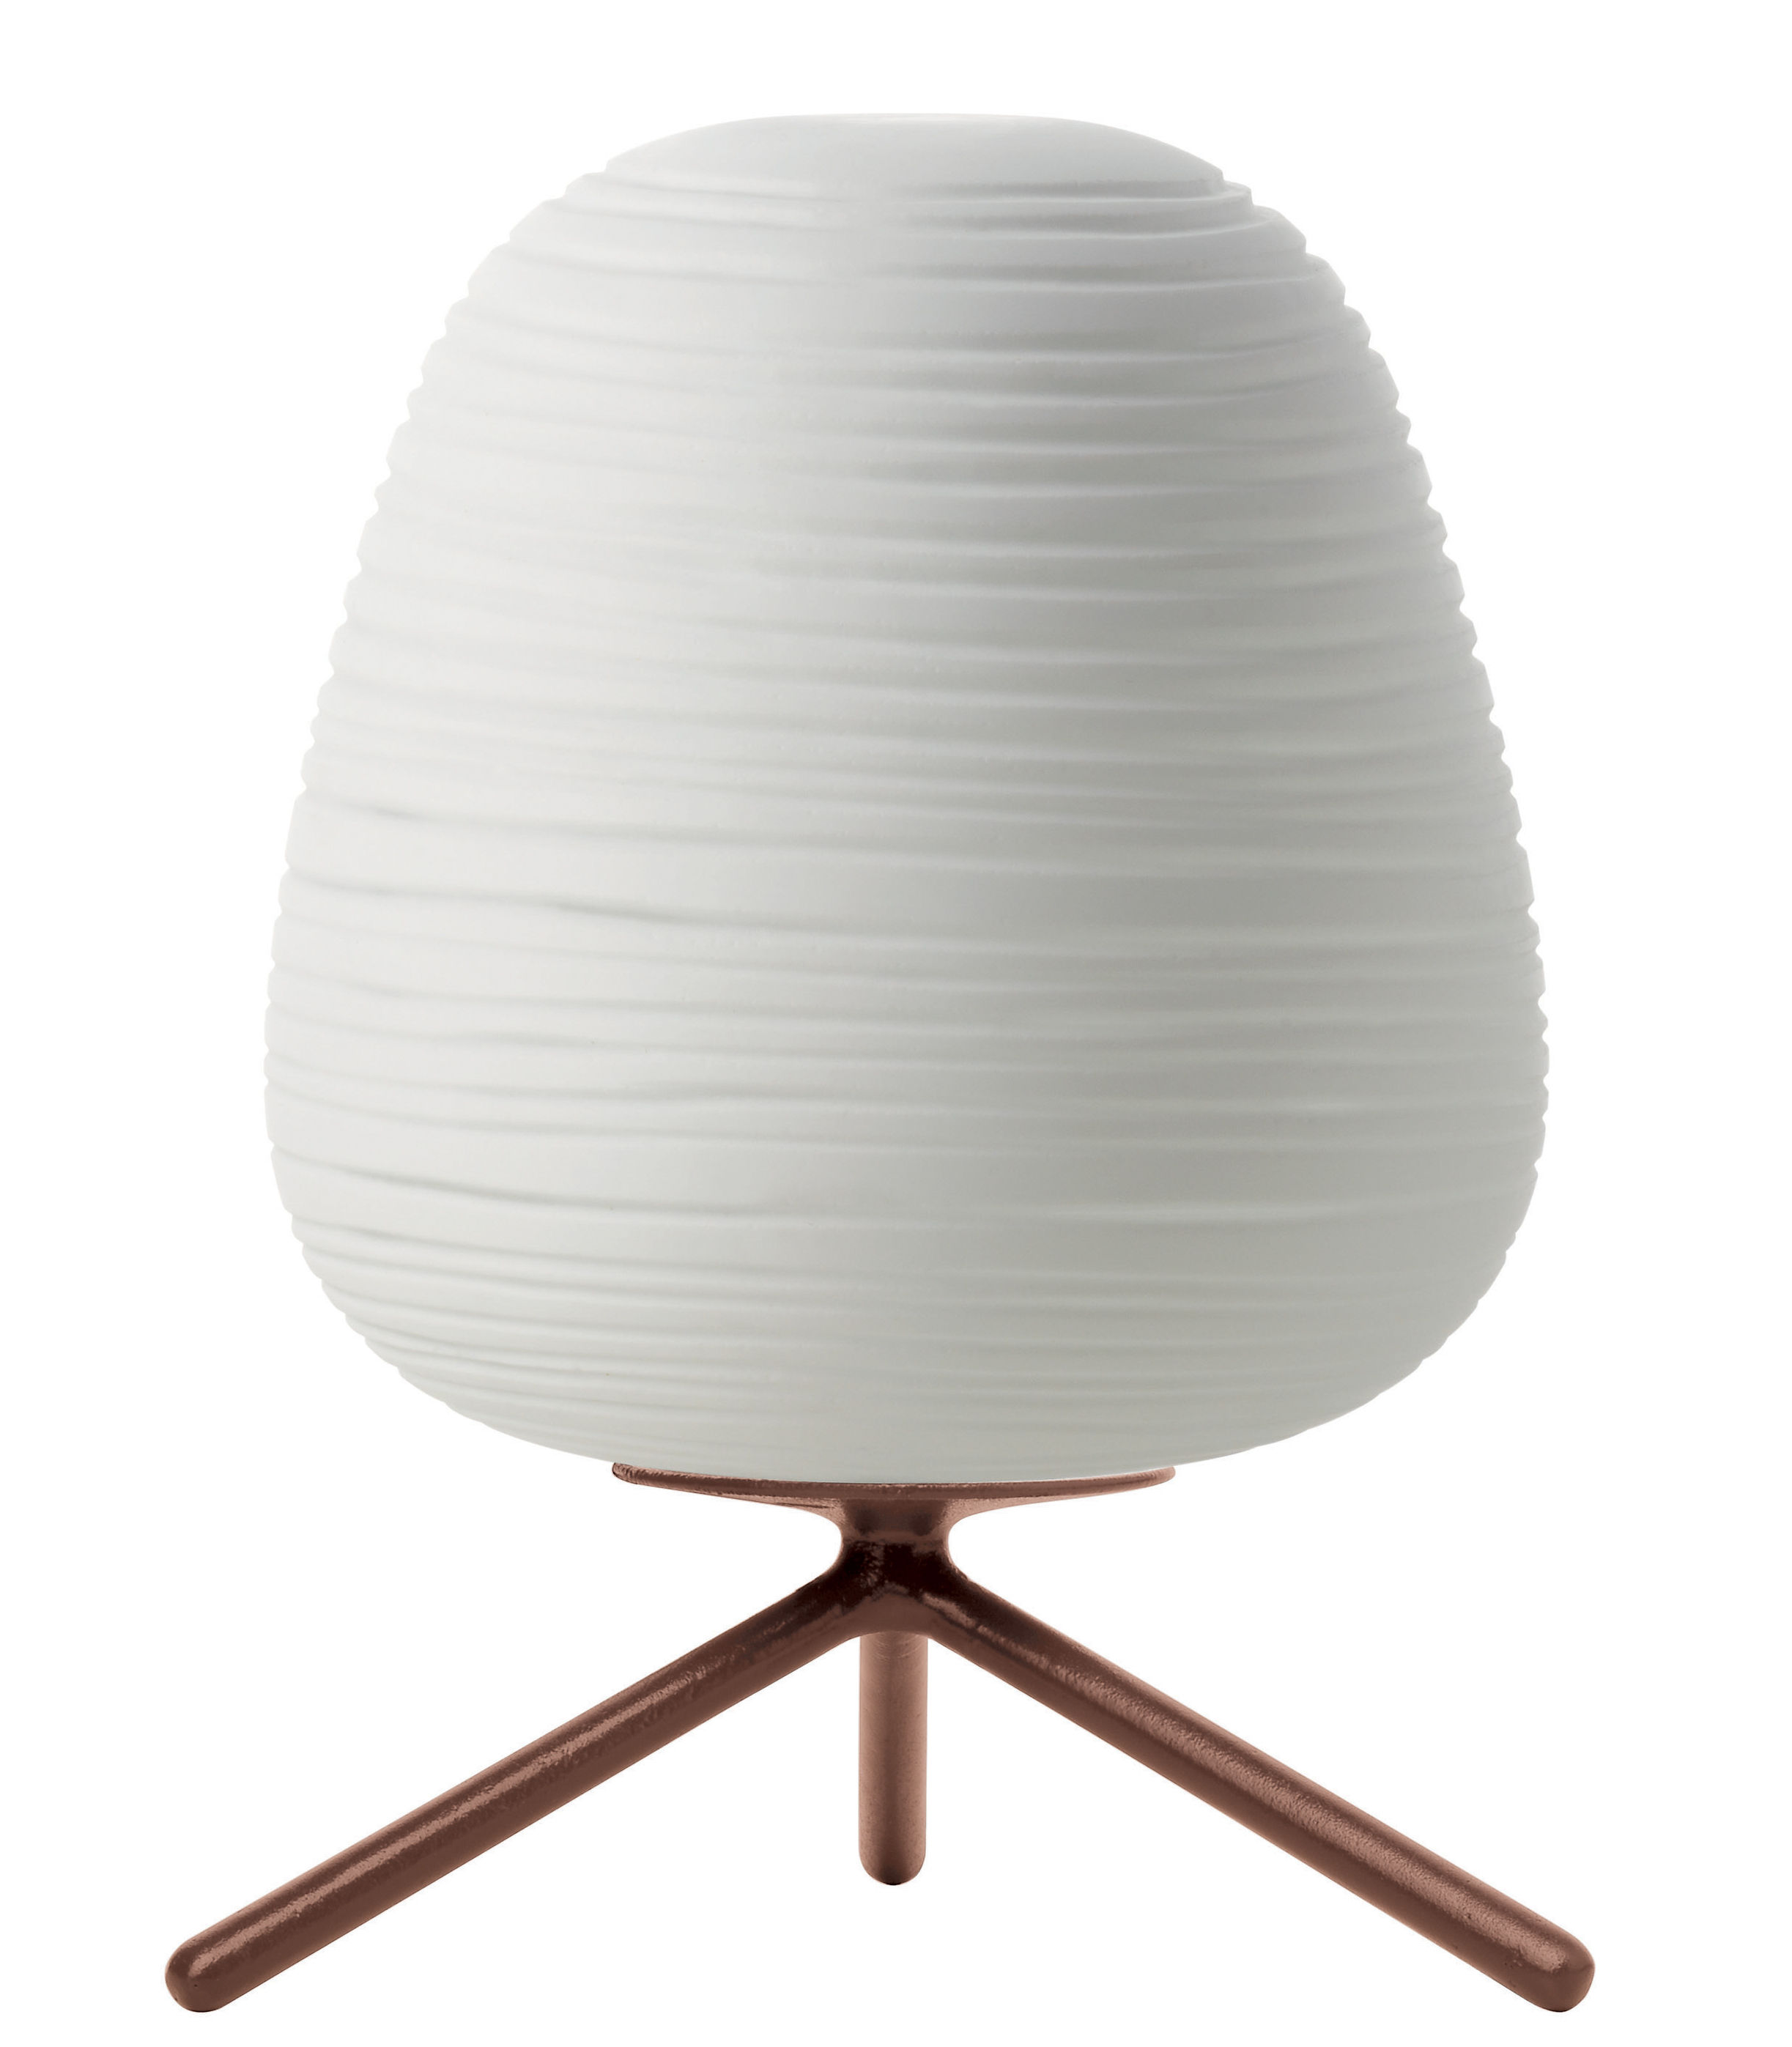 Lighting - Table Lamps - Rituals 3 Table lamp by Foscarini - White / Dimmer - Mouth blown glass